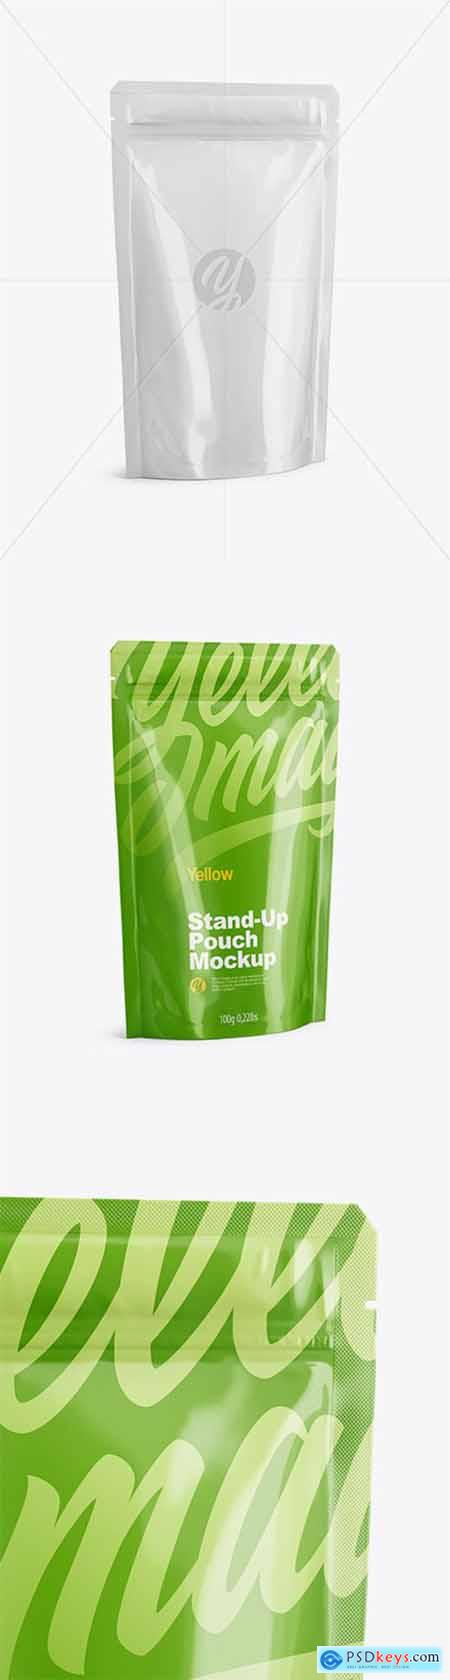 Glossy Stand Up Pouch with Zipper Mockup - Half Side View 51072